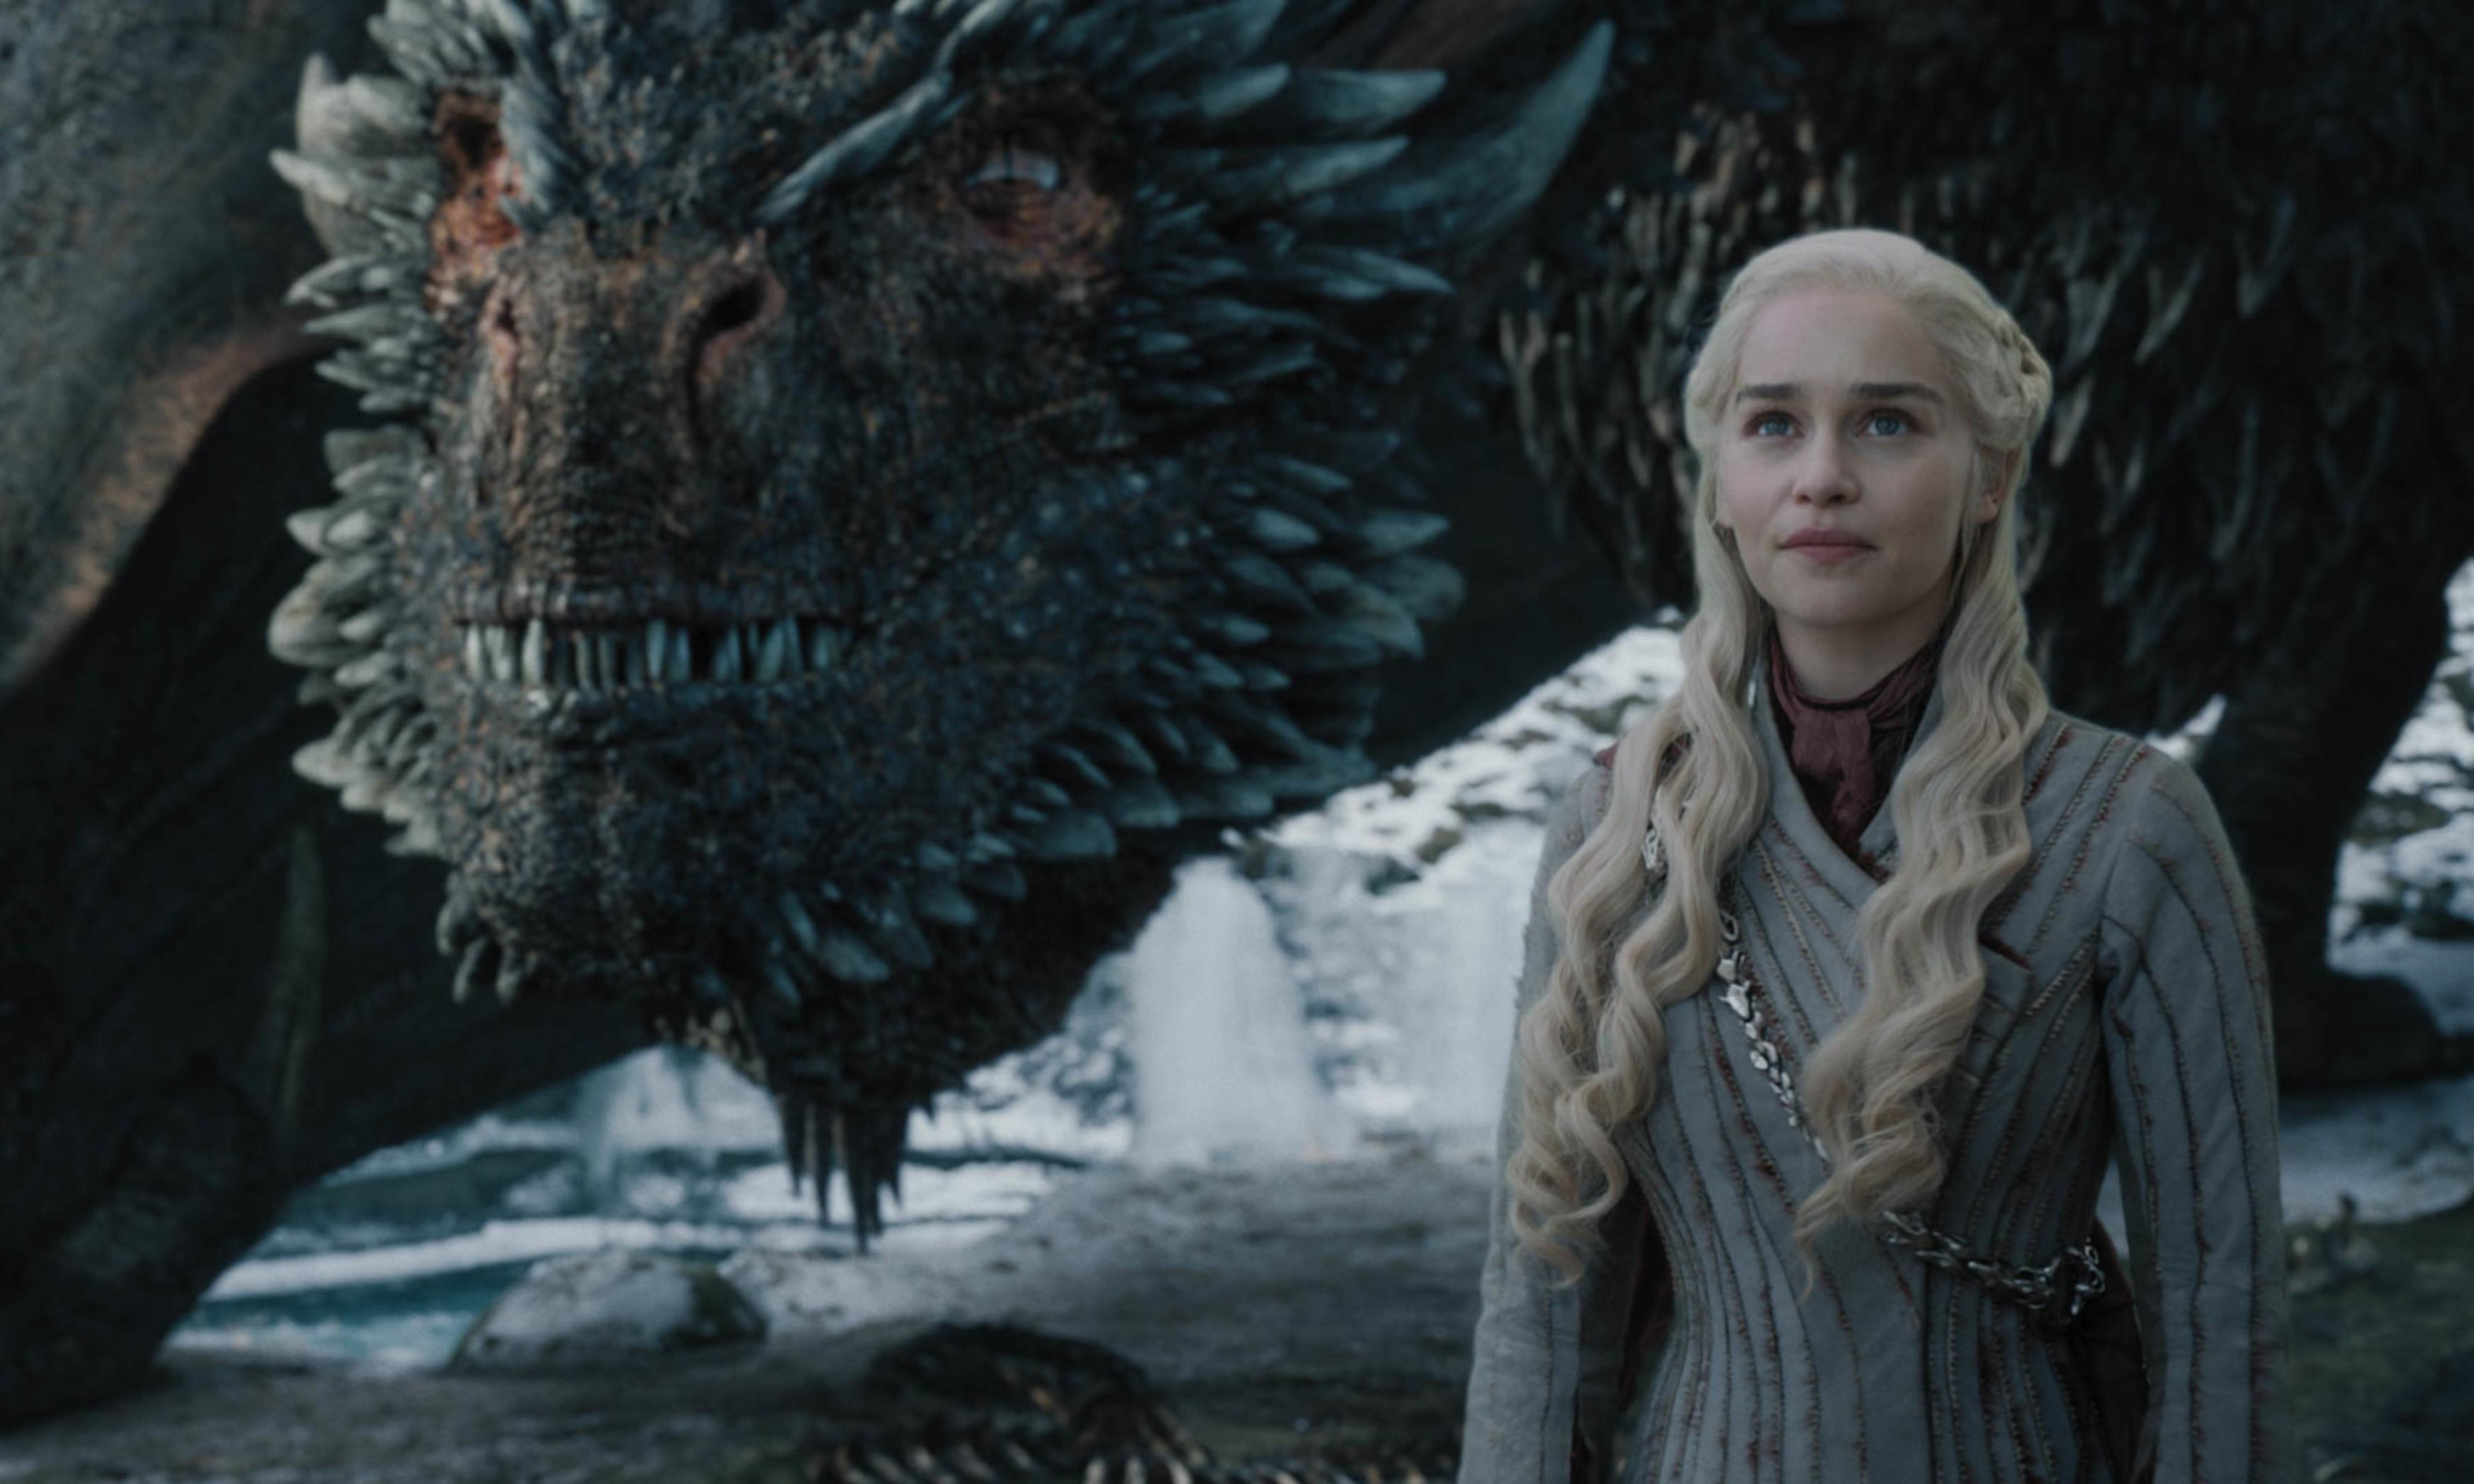 In the end, Game of Thrones needed better writers